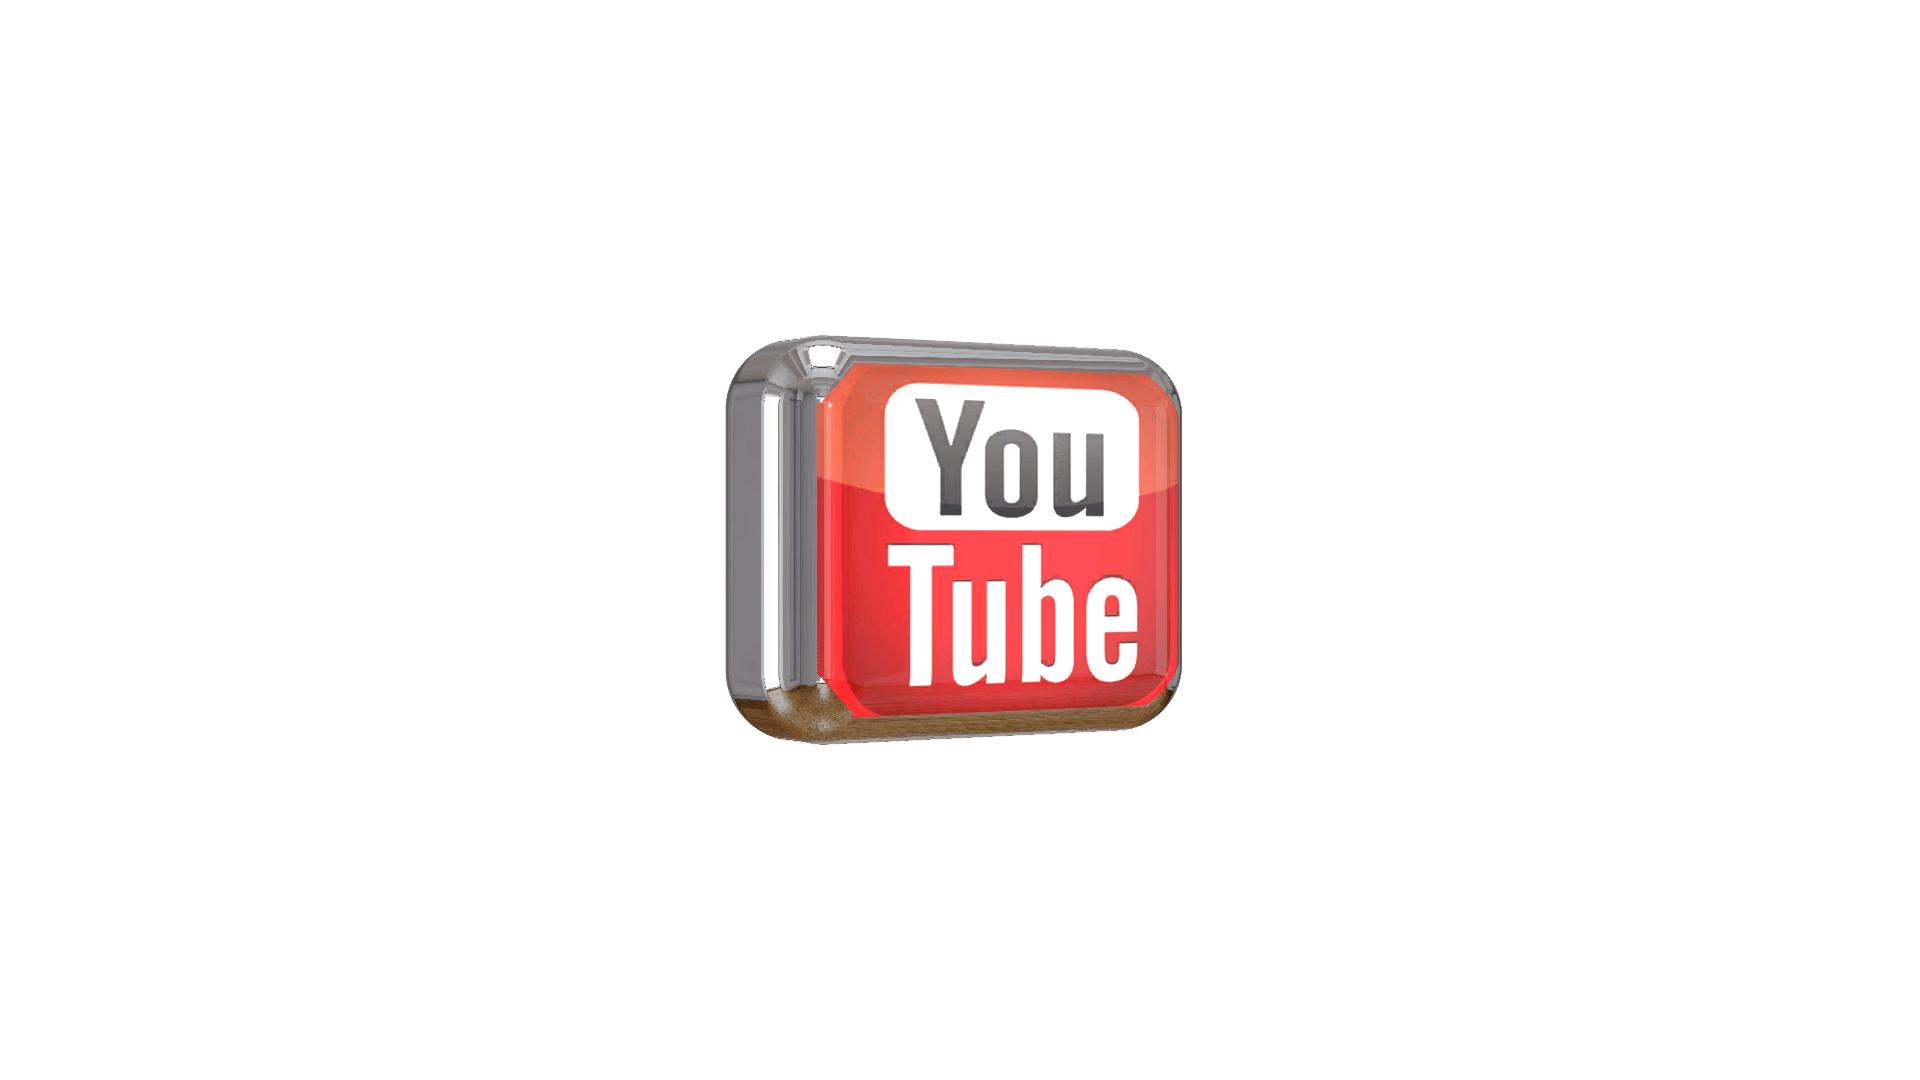 YouTube 3D Shiny Logo Free PNG High Quality